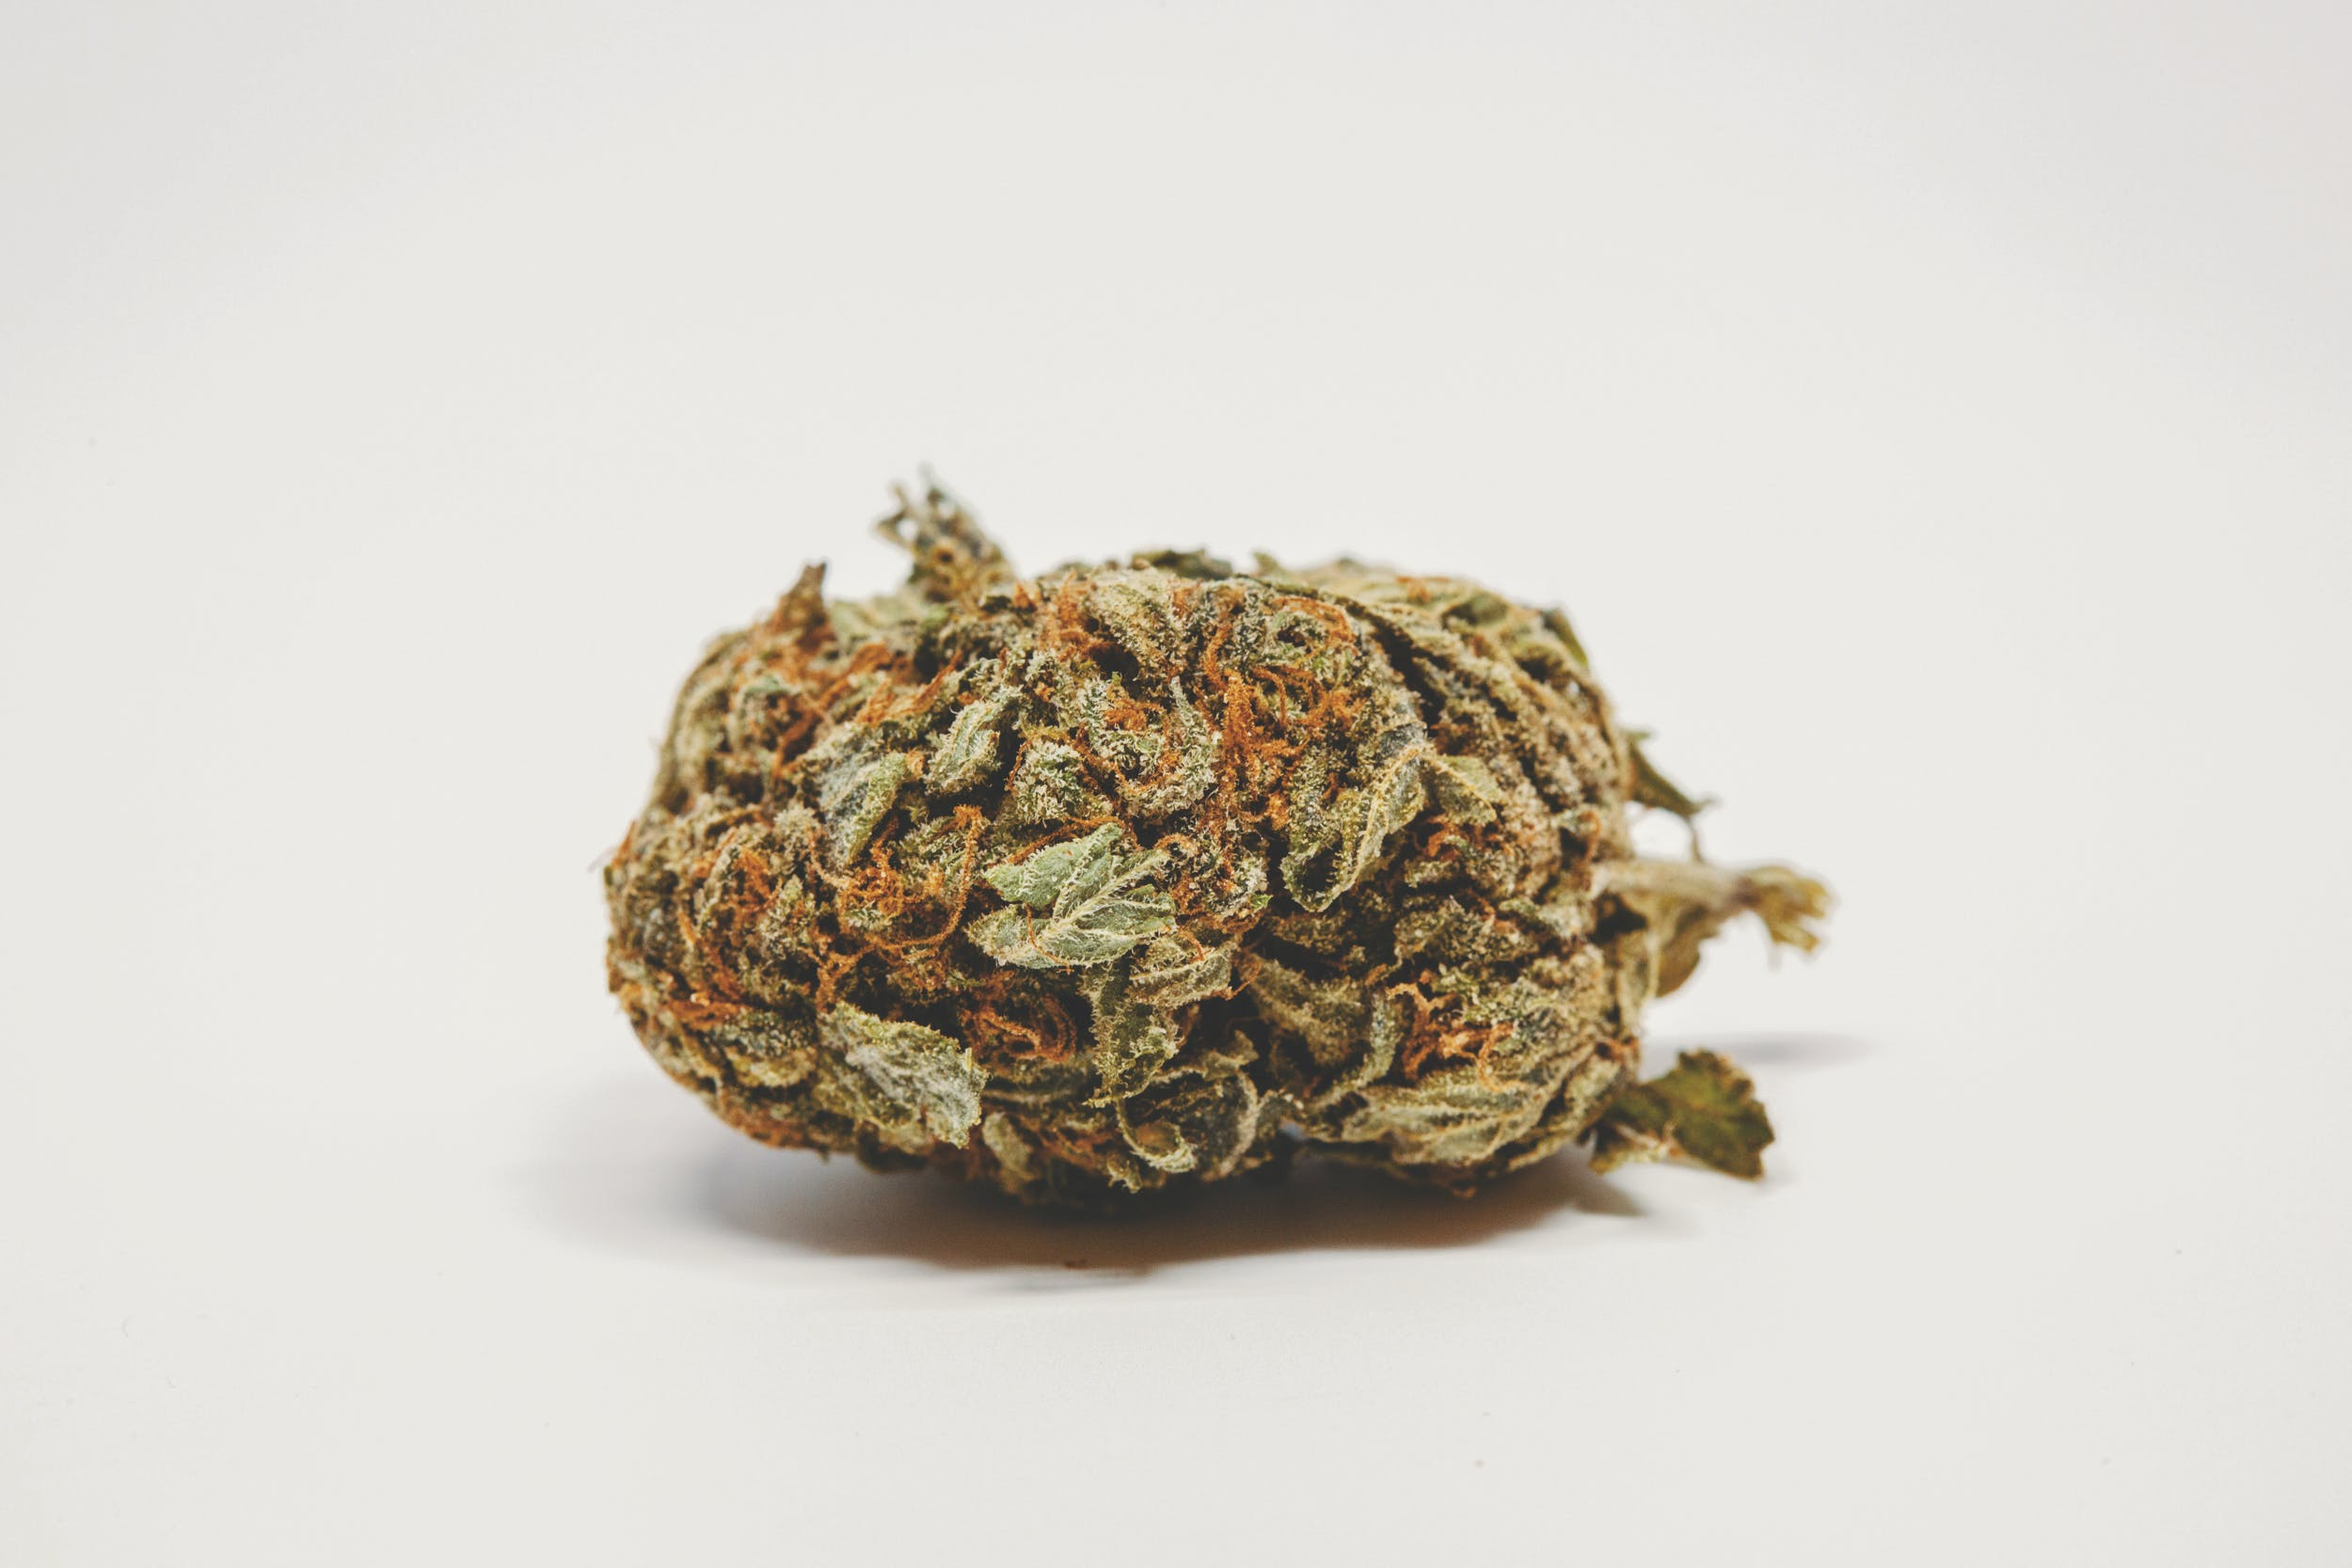 Best Kush Strains These are the Best Kush Strains on the Planet